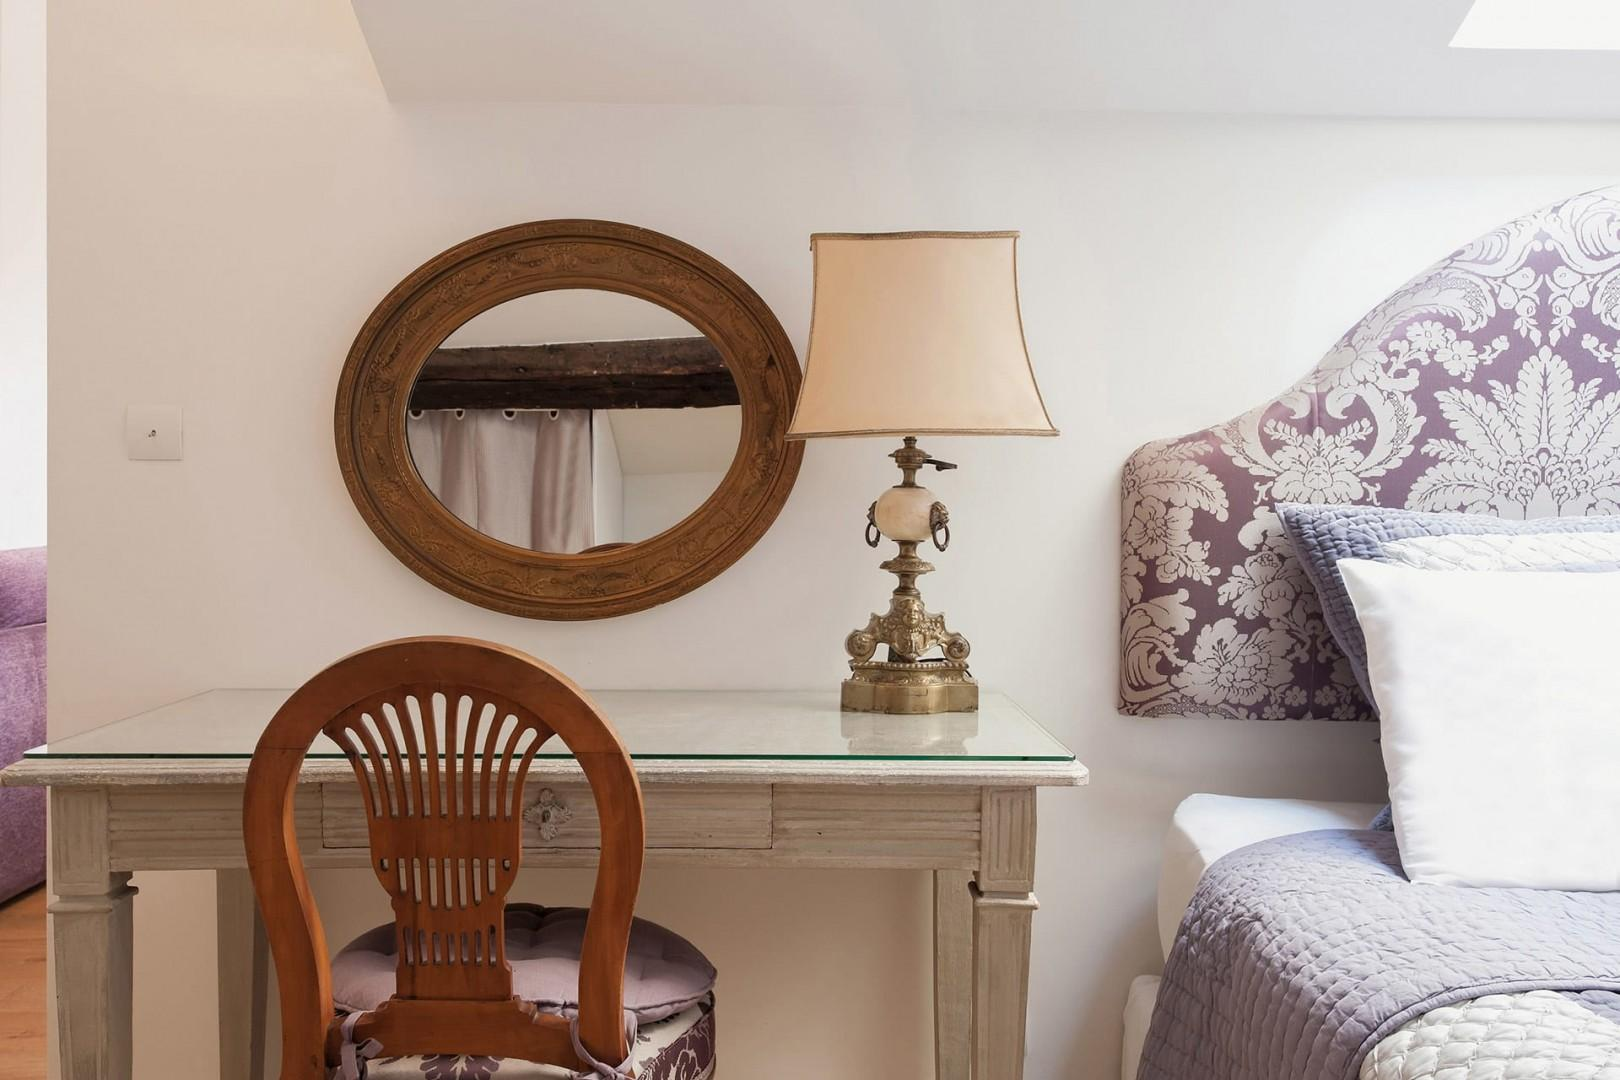 Hand-crafted lamps on the antique French bedroom dresser